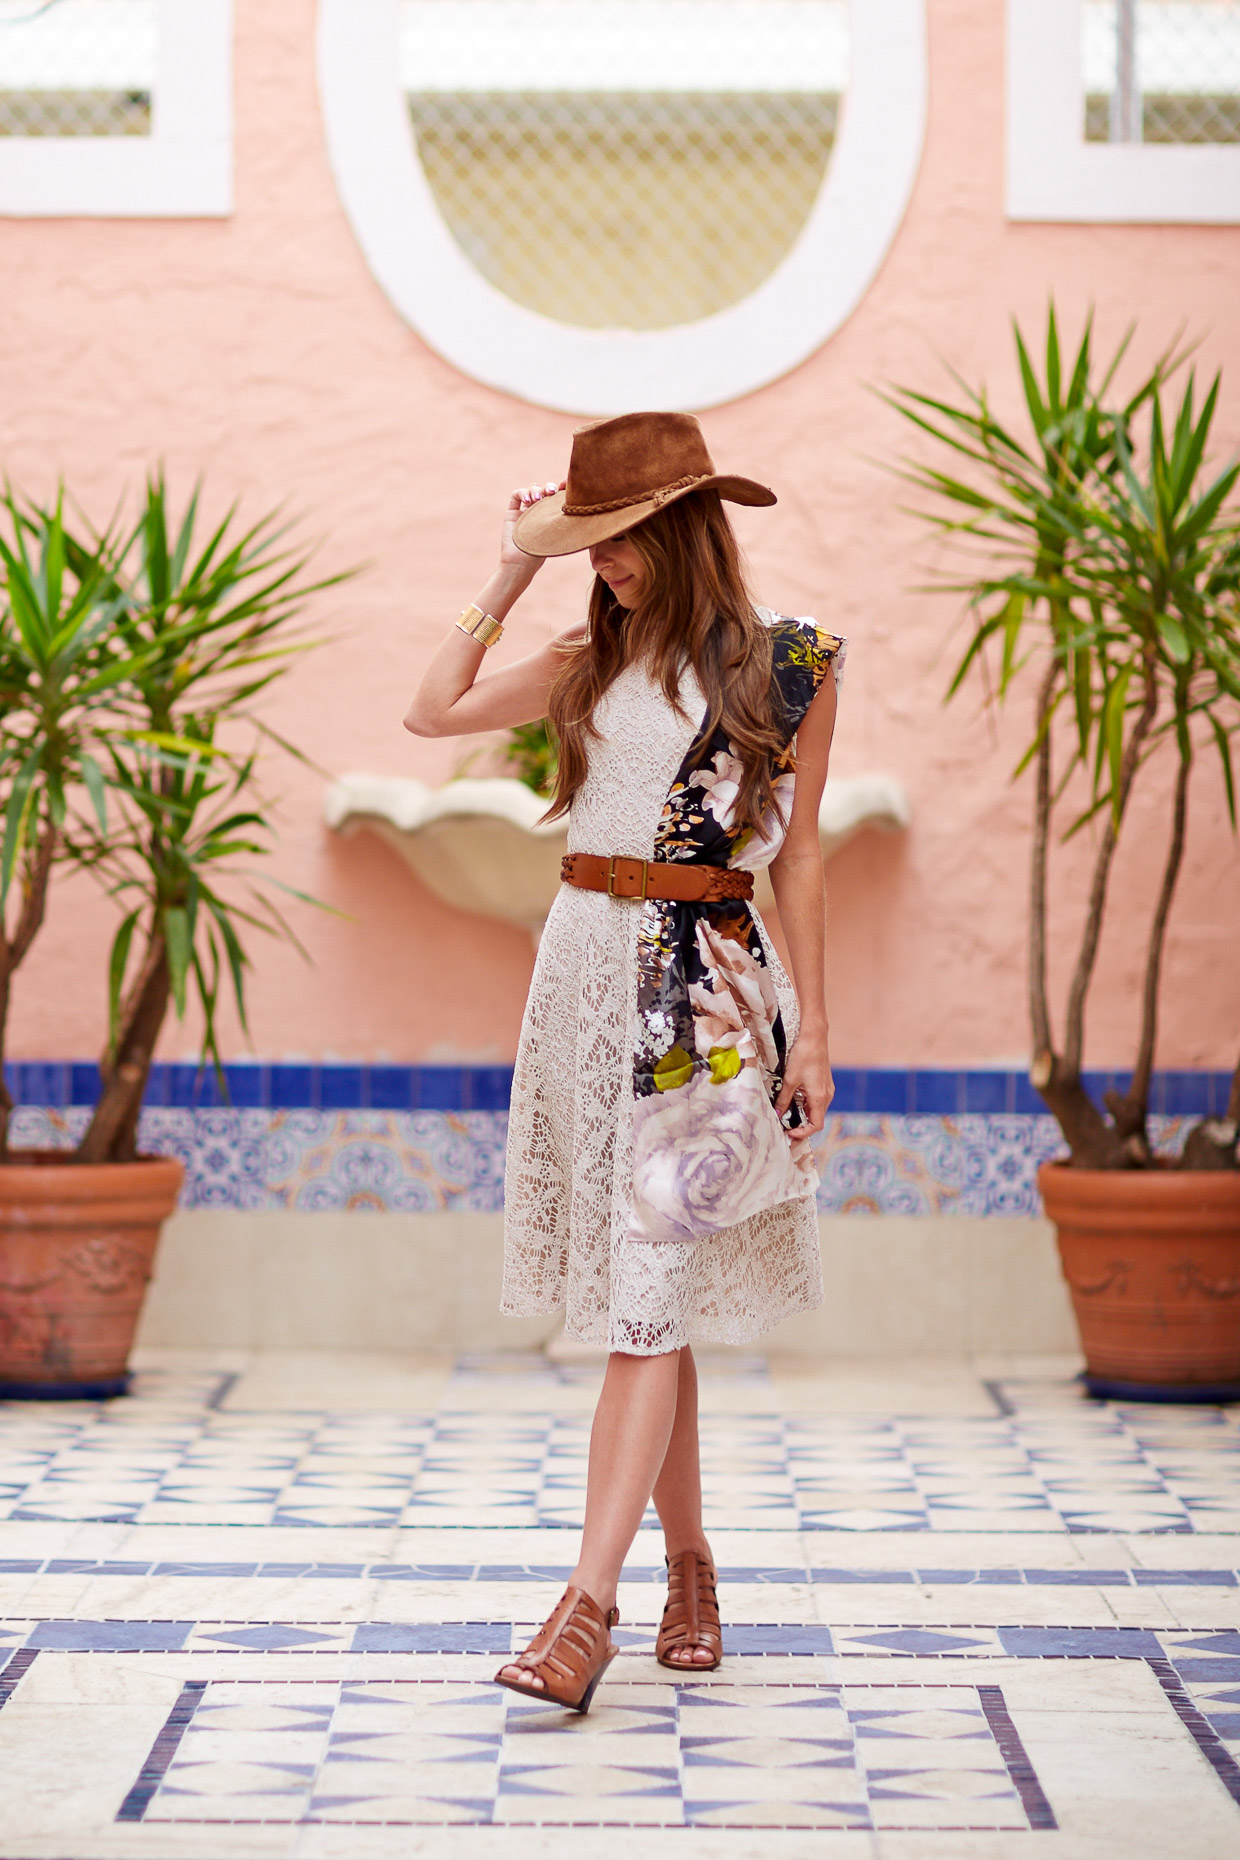 LR-MA_Social_Spring_15_Cream_Dress_Blogger_879